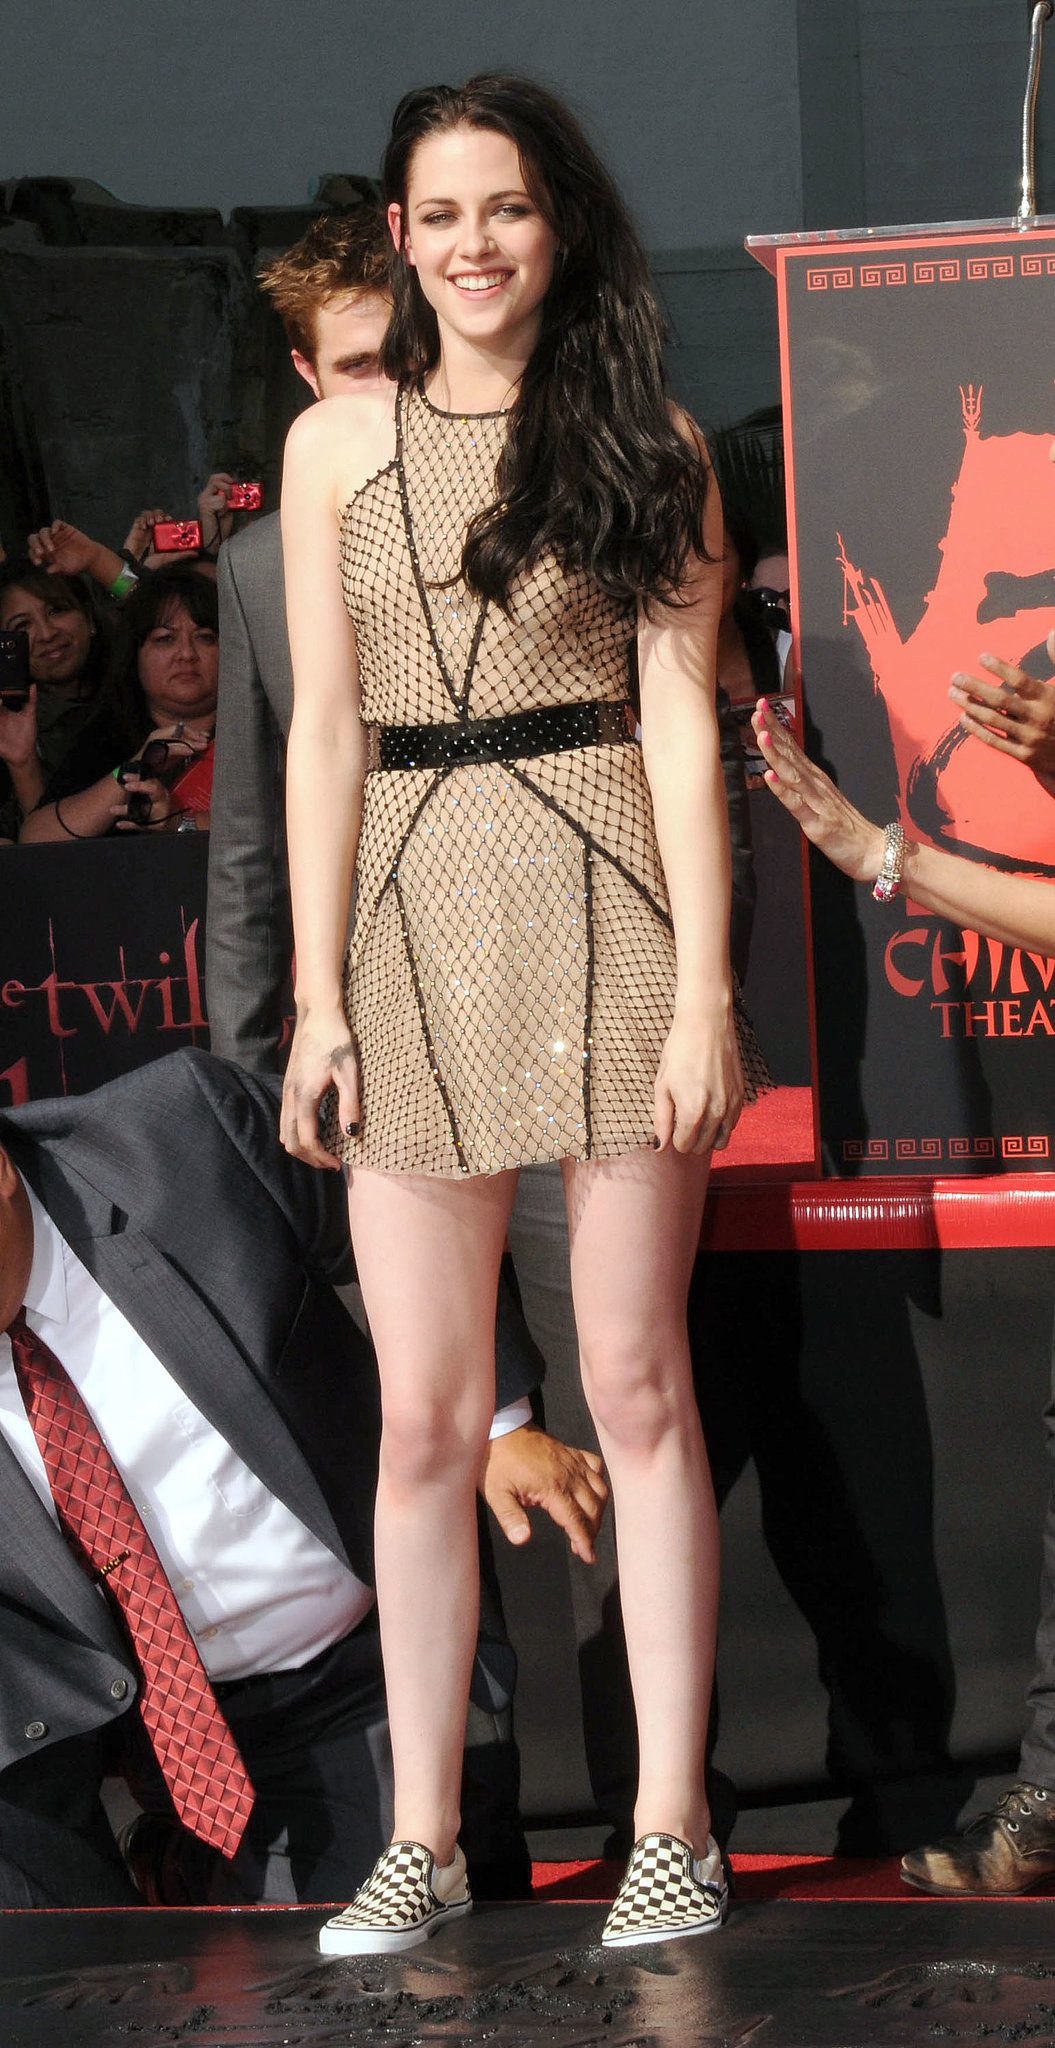 In November 2011, Stewart arrived at the Hollywood handprint ceremony in a sheer, shortened Marios Schwab dress and suede Brian Atwood platforms, which she quickly swapped for checkered Vans slip-ons.